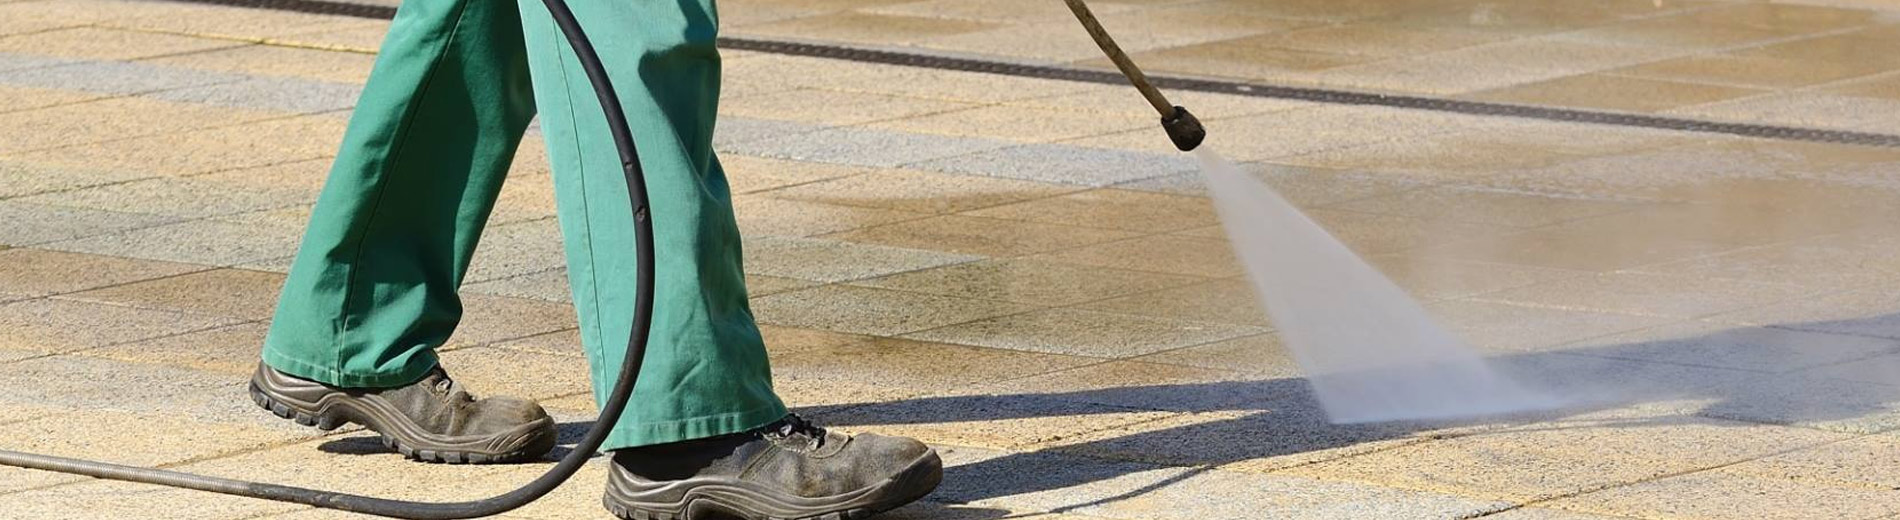 masterclass-high-pressure-cleaning-adelaide-banner-image